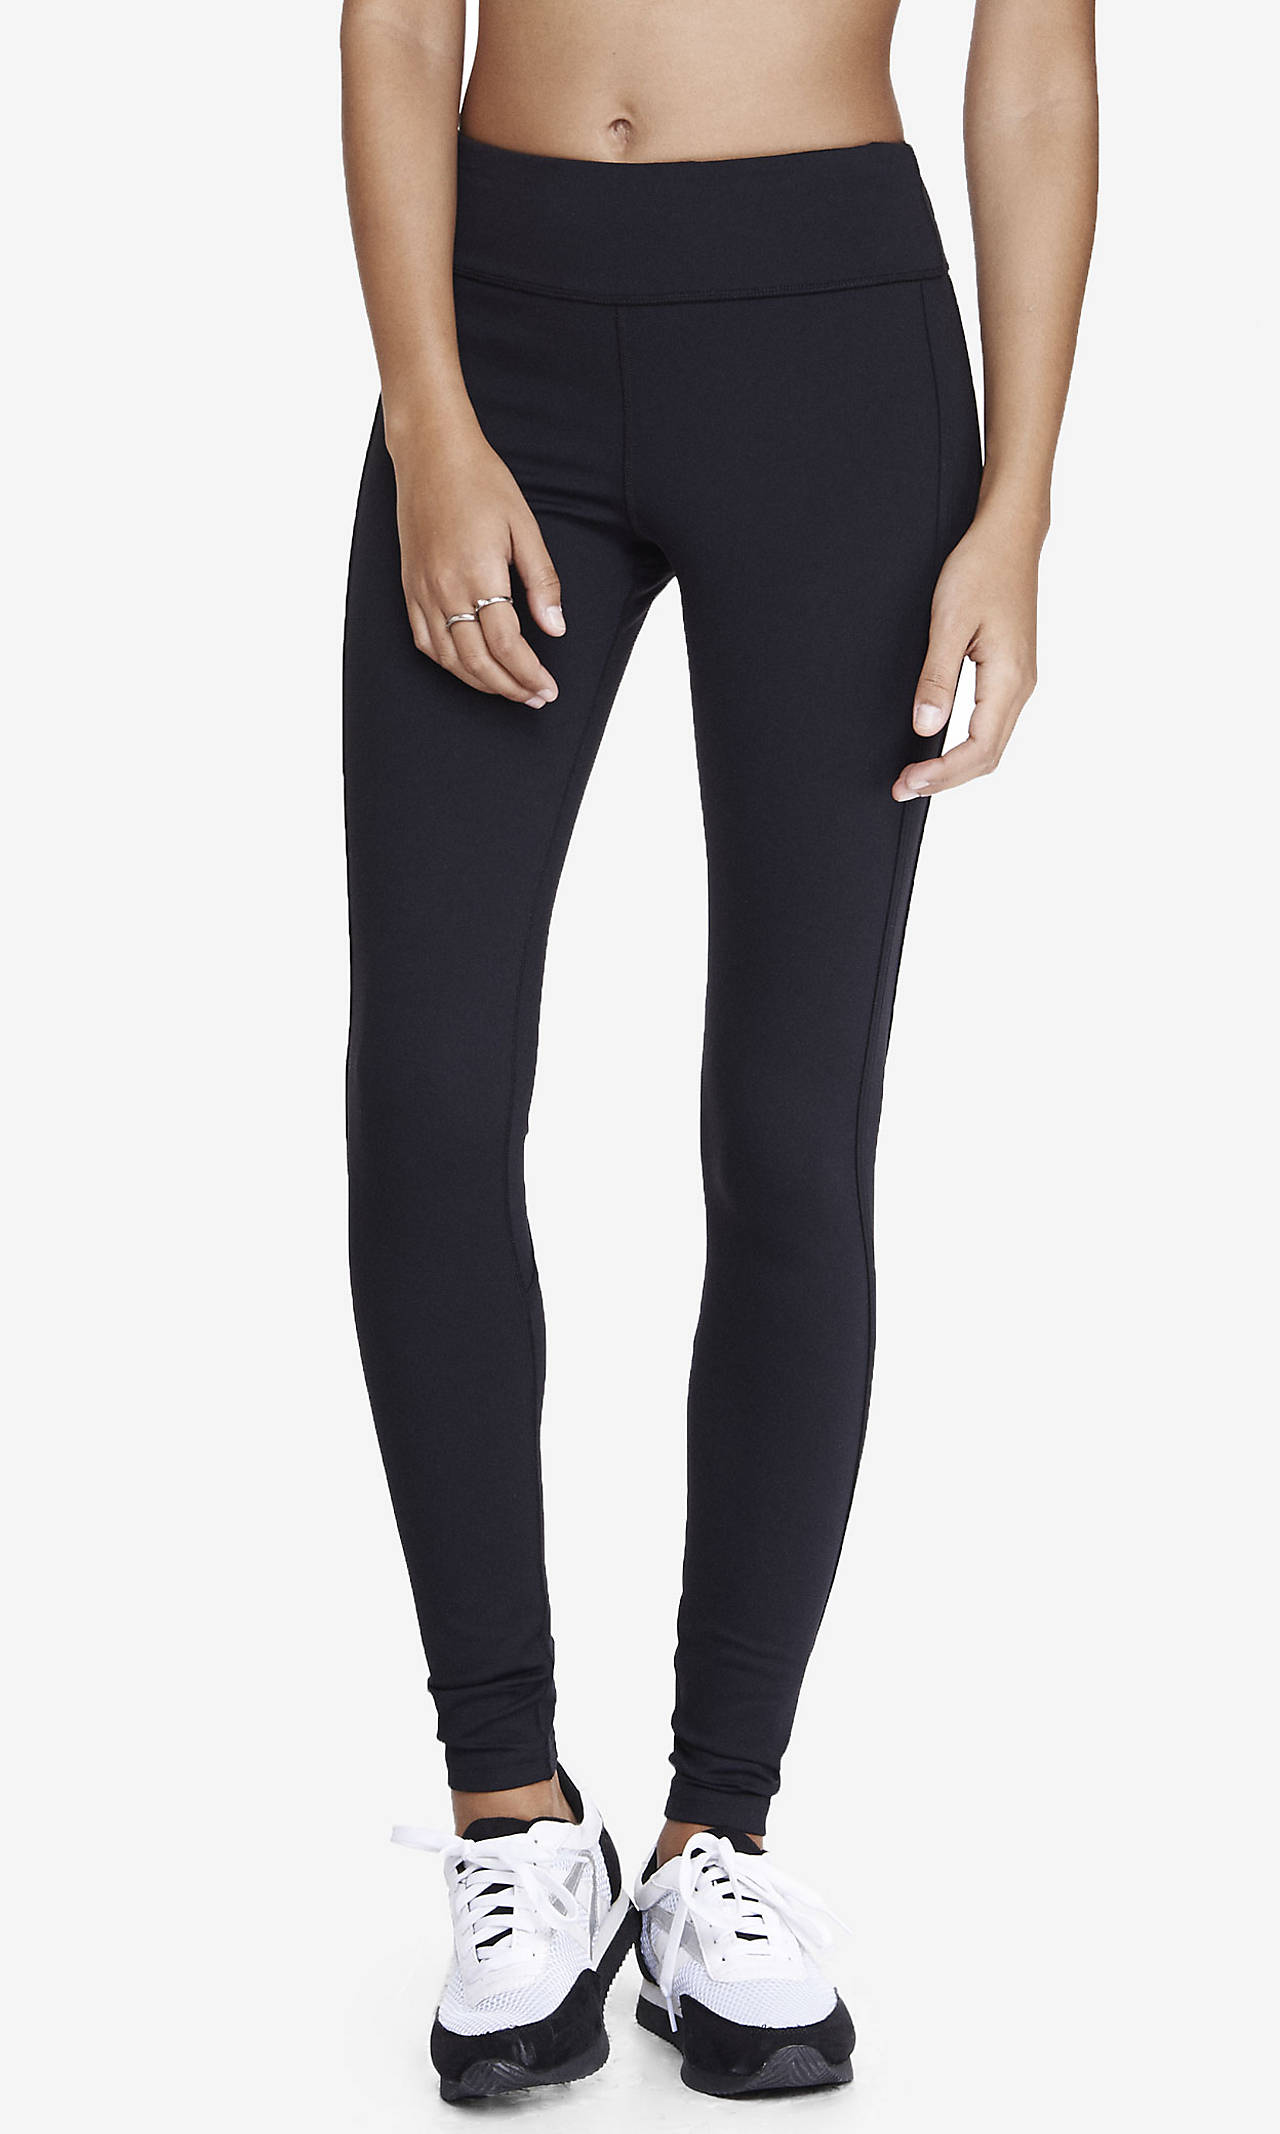 Exp core compression piped legging from express